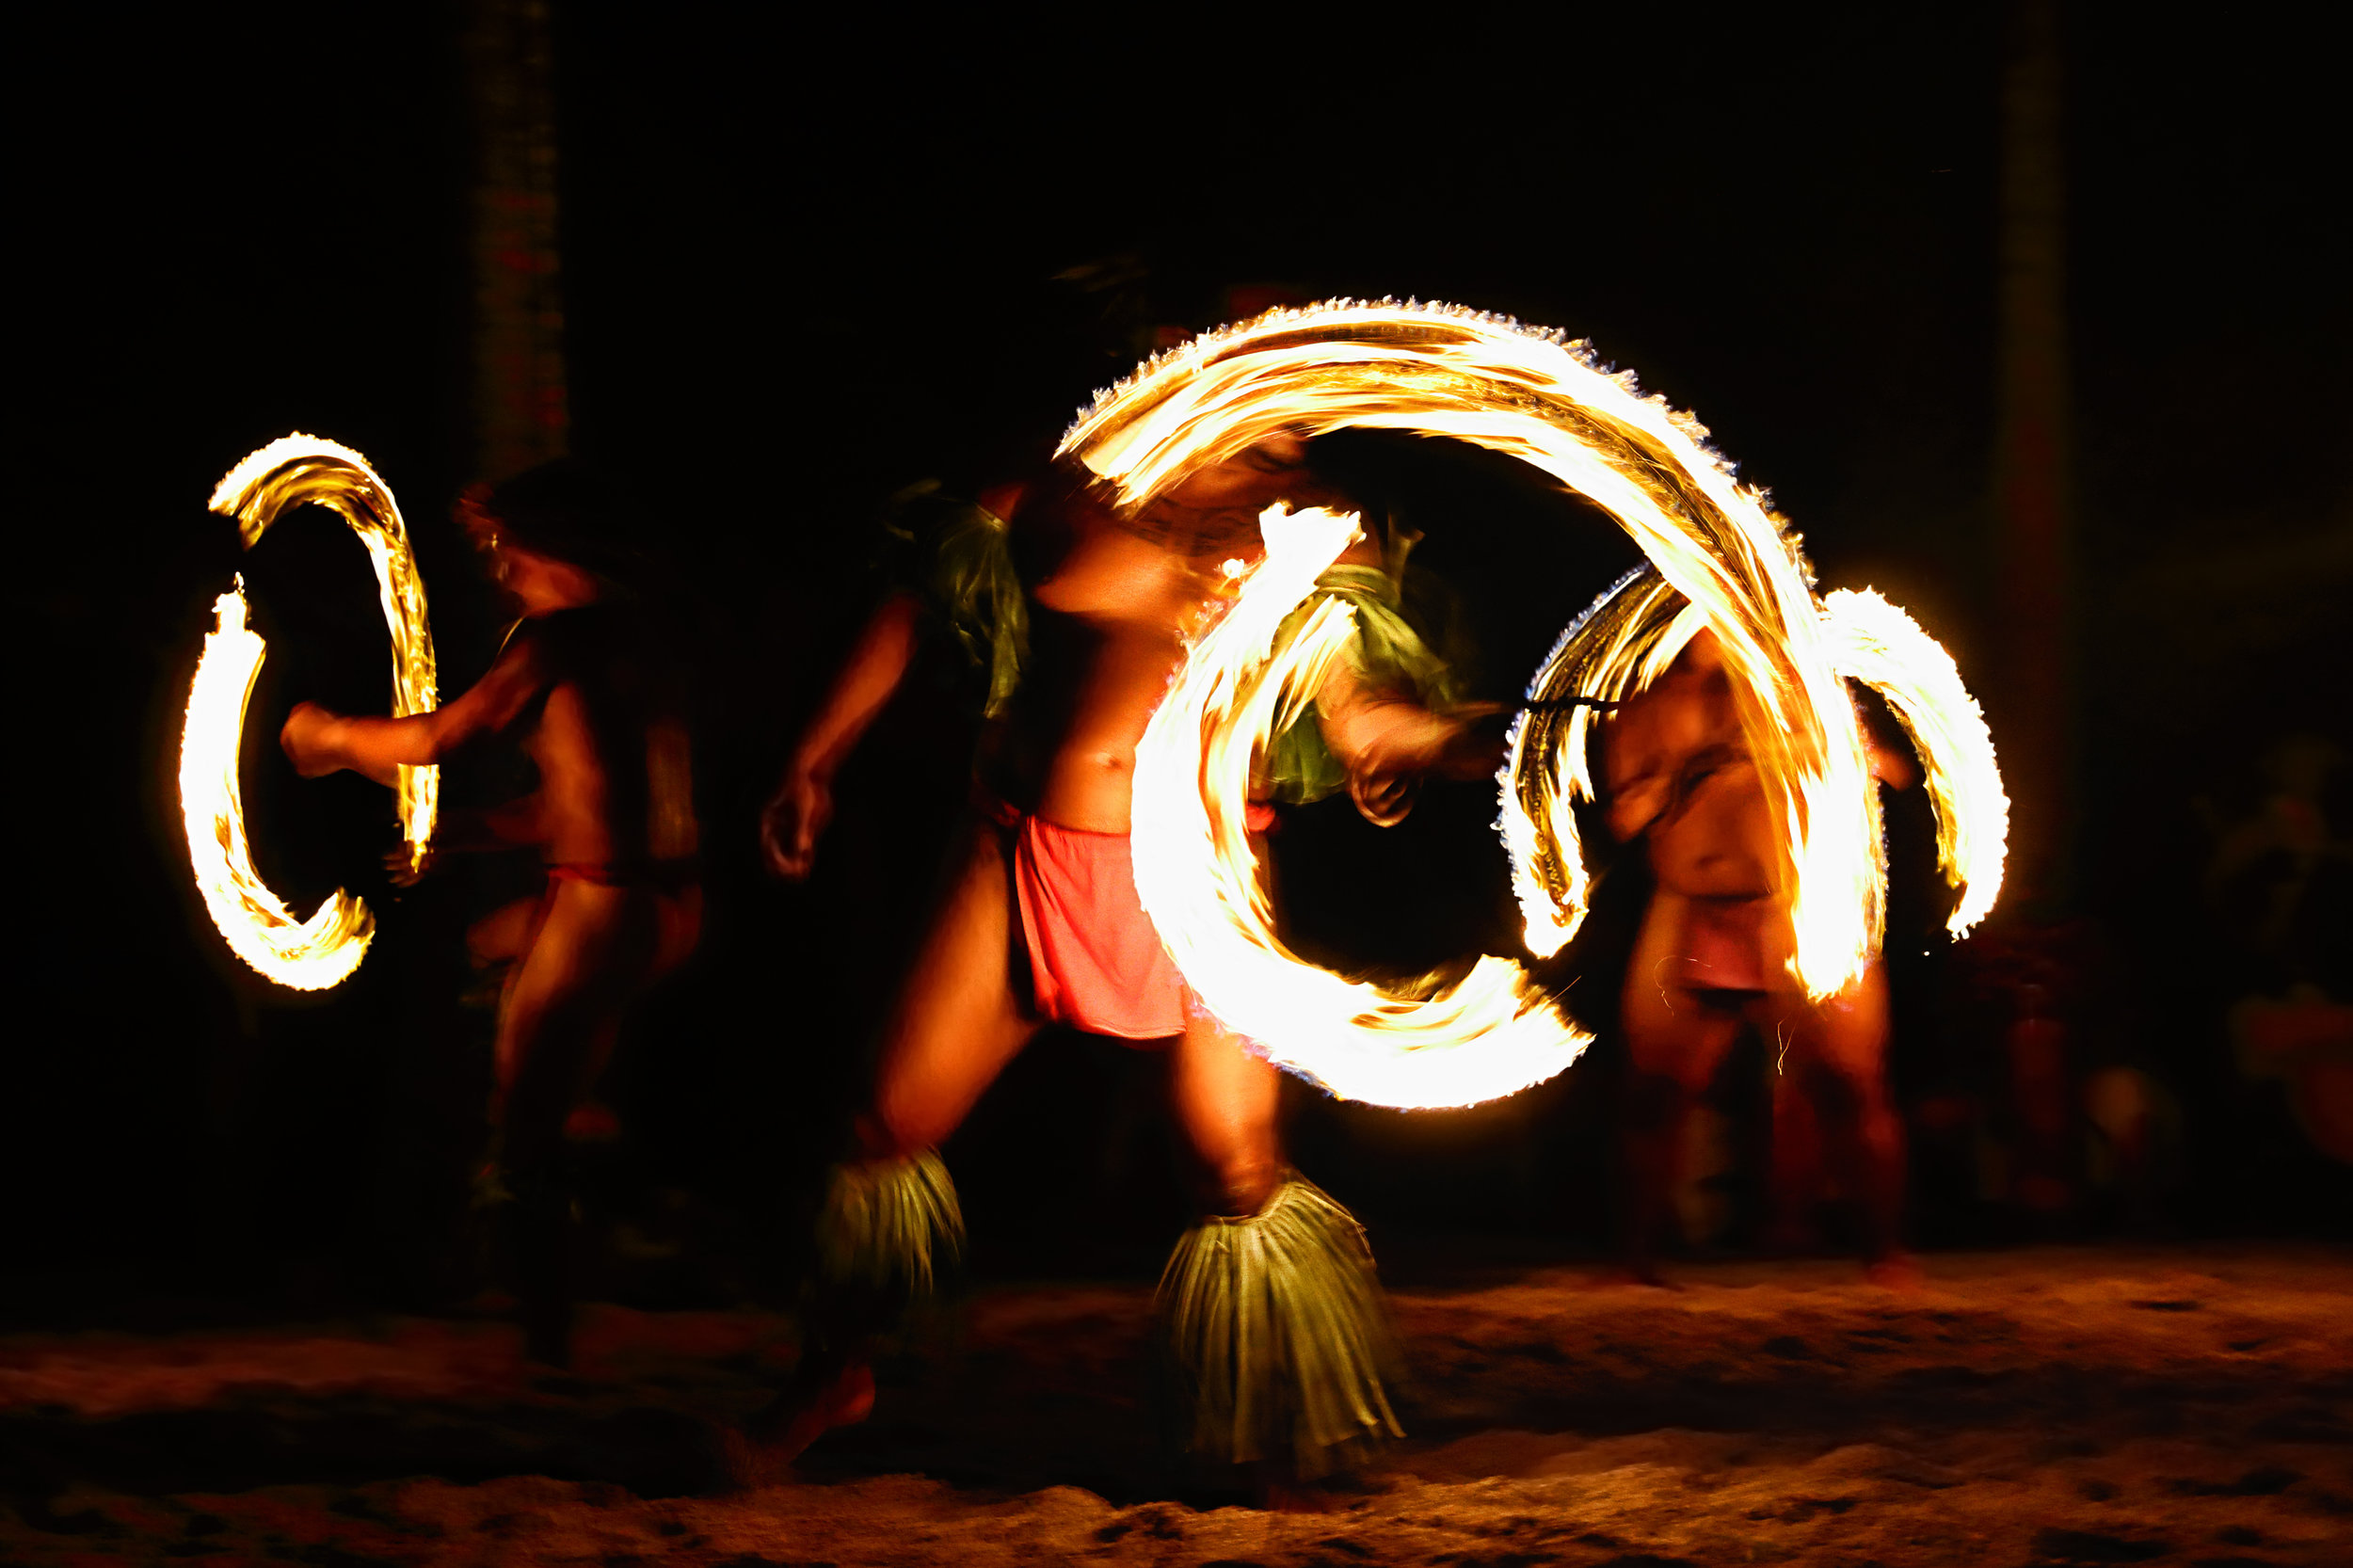 Polynesian Cultural Center and Luau - Enjoy wandering through eight villages replicating life in various parts of Polynesia. Learn how to make food, play games and even throw a spear - just as they do on these islands.